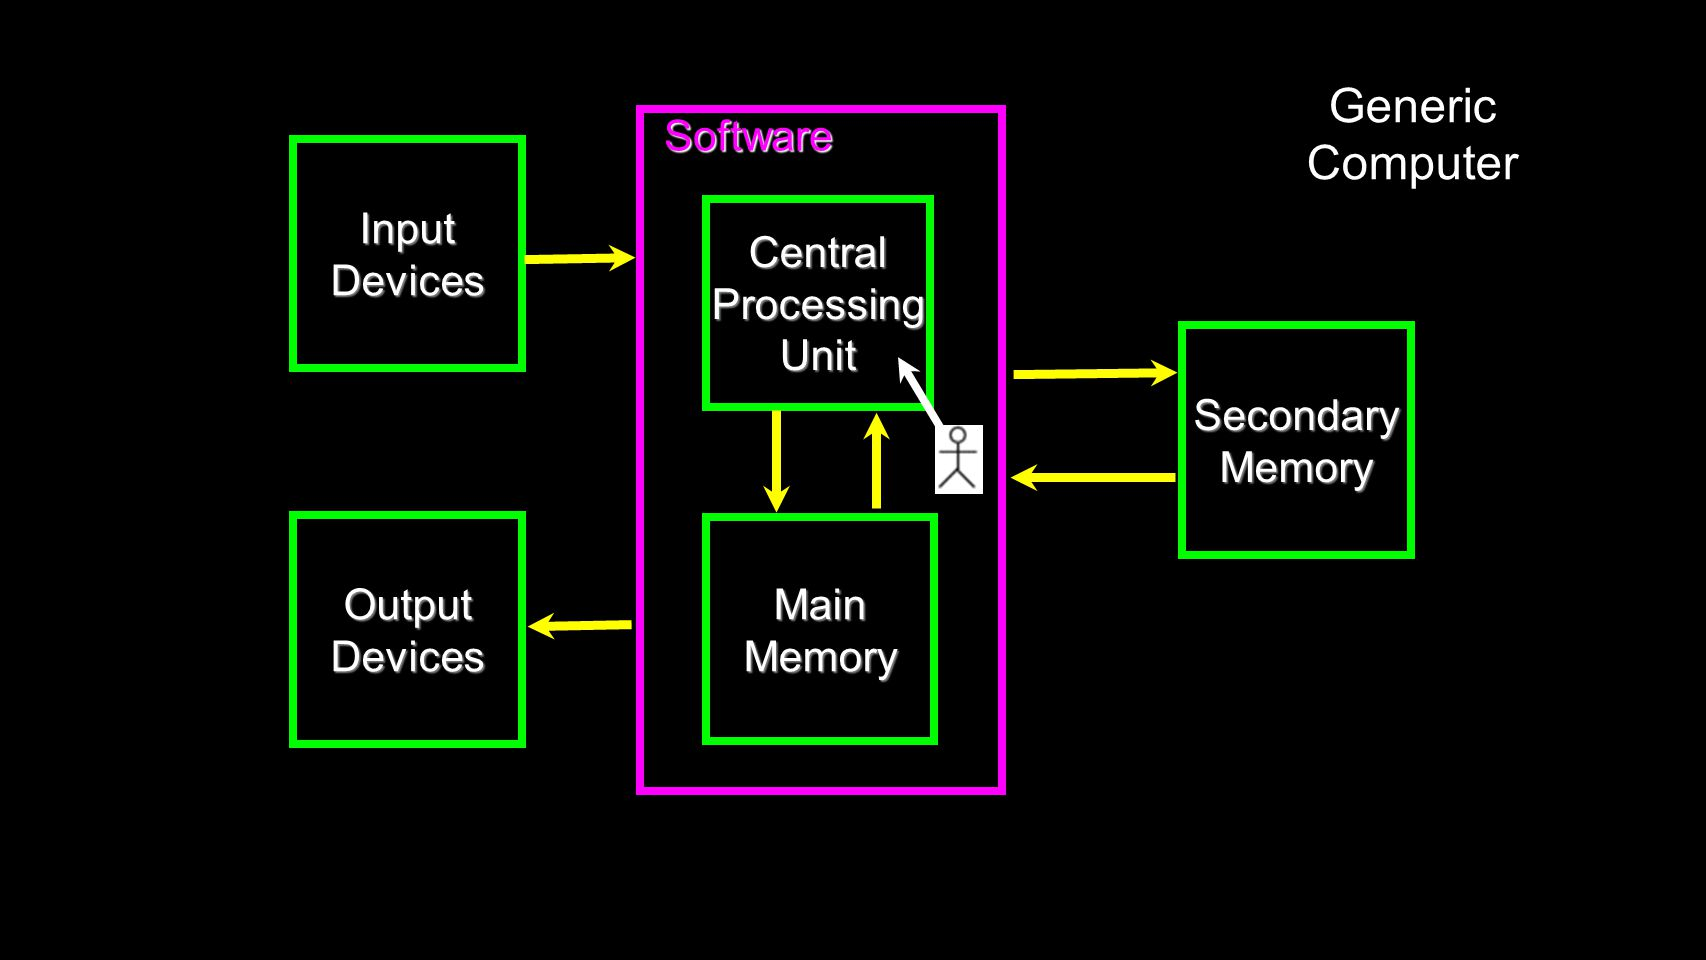 Software Software InputDevices CentralProcessingUnit MainMemory OutputDevices SecondaryMemory Generic Computer